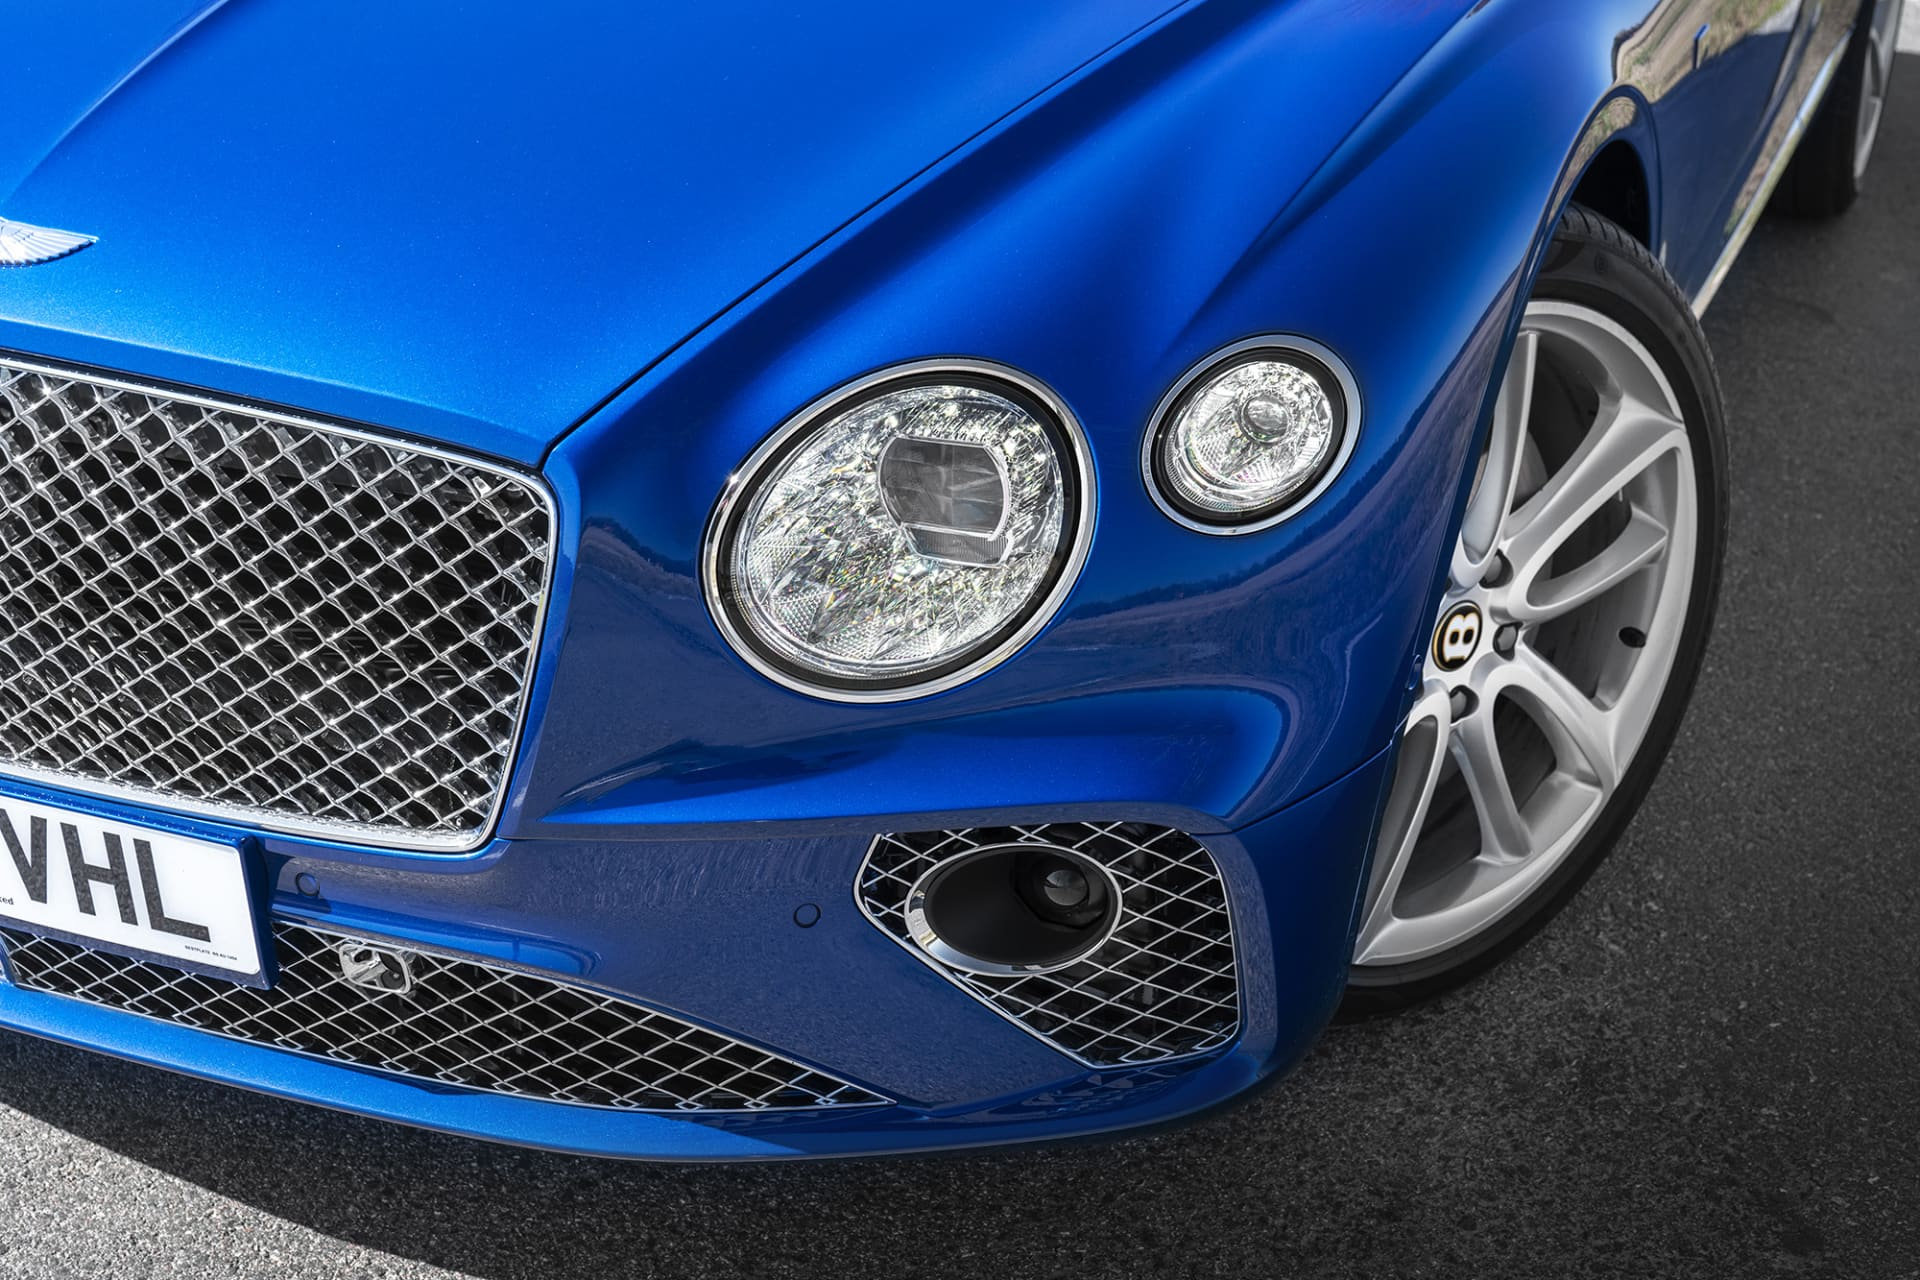 The crystal-looking headlights are works of art, sparkling beautifully even in daylight.